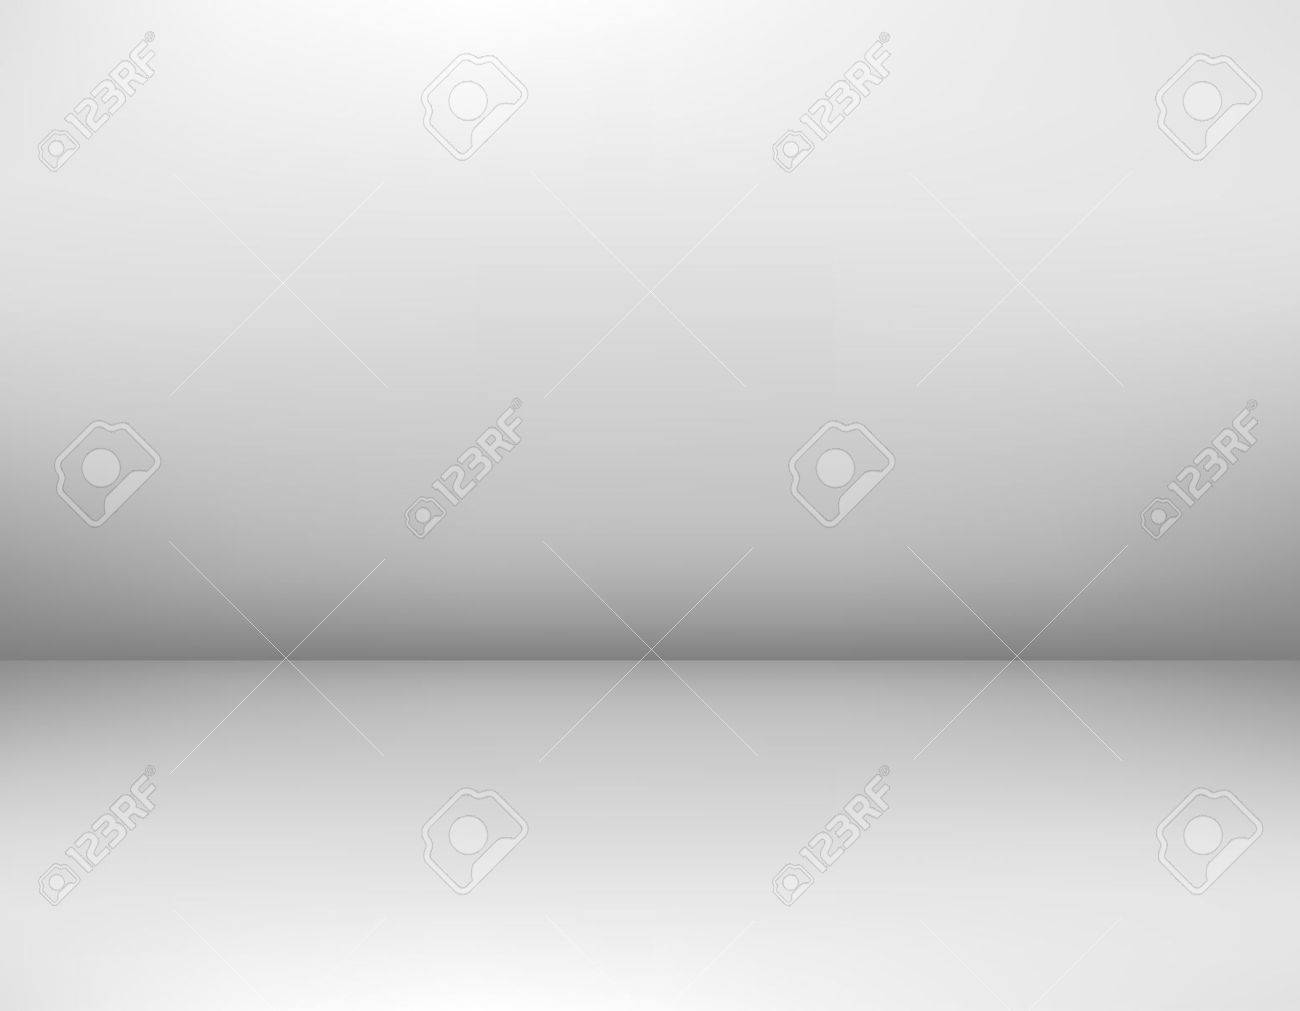 illustration of a white decor background Stock Vector - 16375675